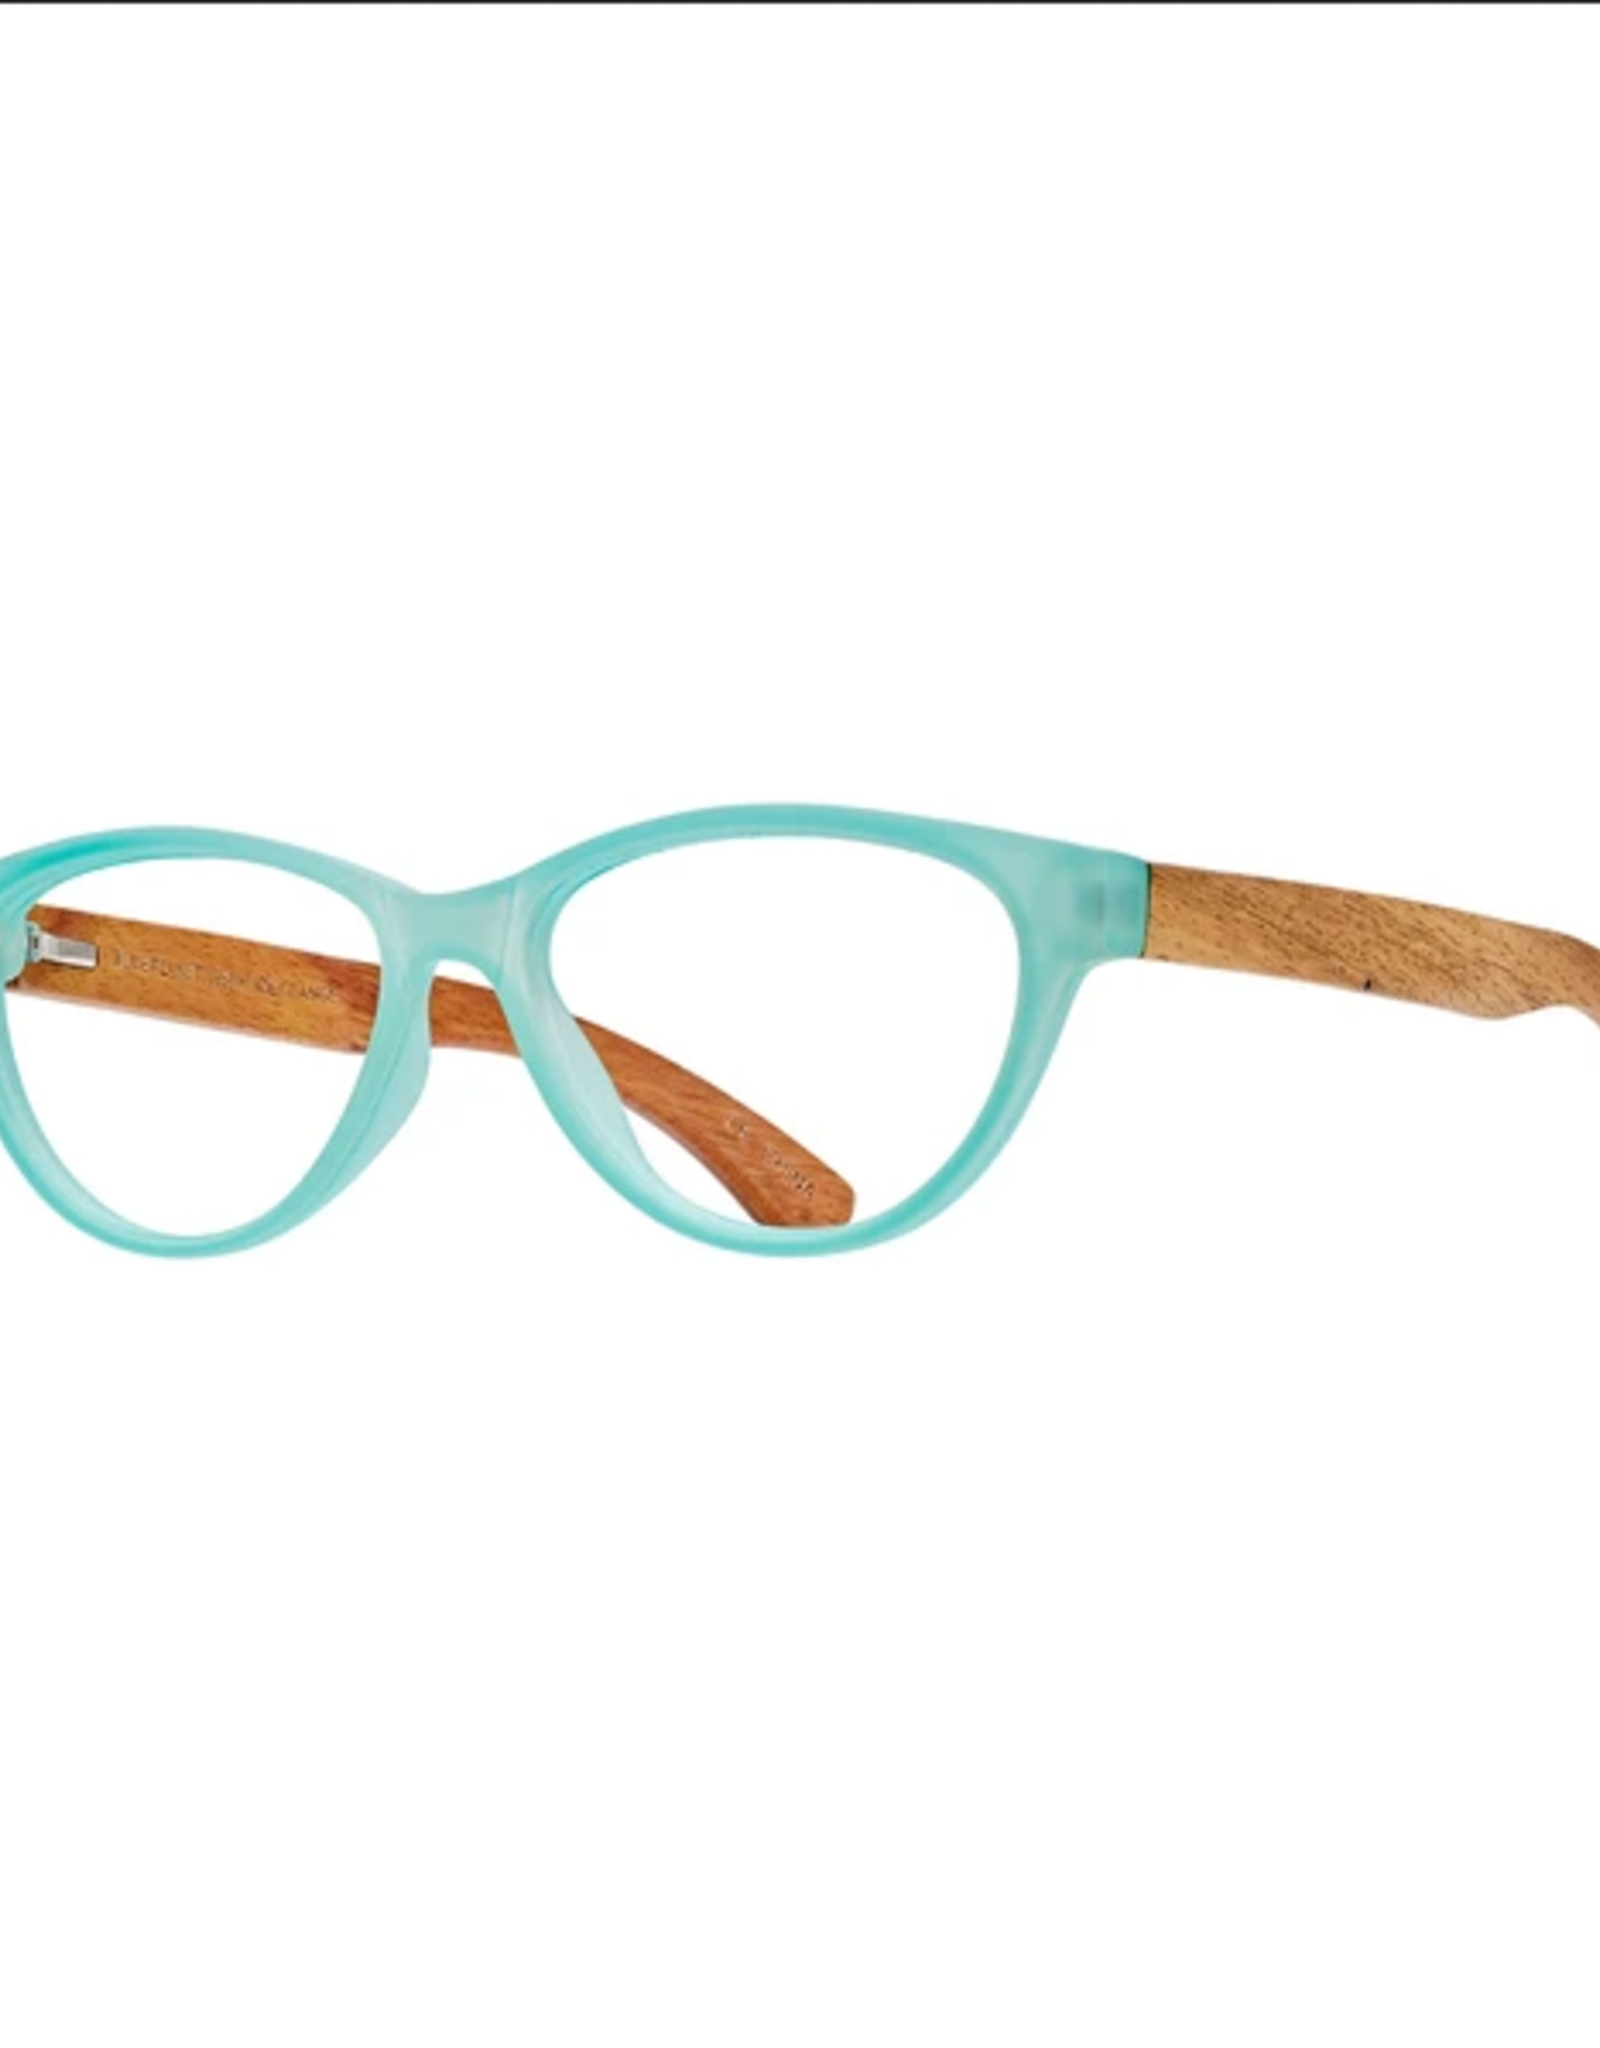 BLUE PLANET EYEWEAR GLASSES READERS MADISON FROST TURQUOISE 2.0